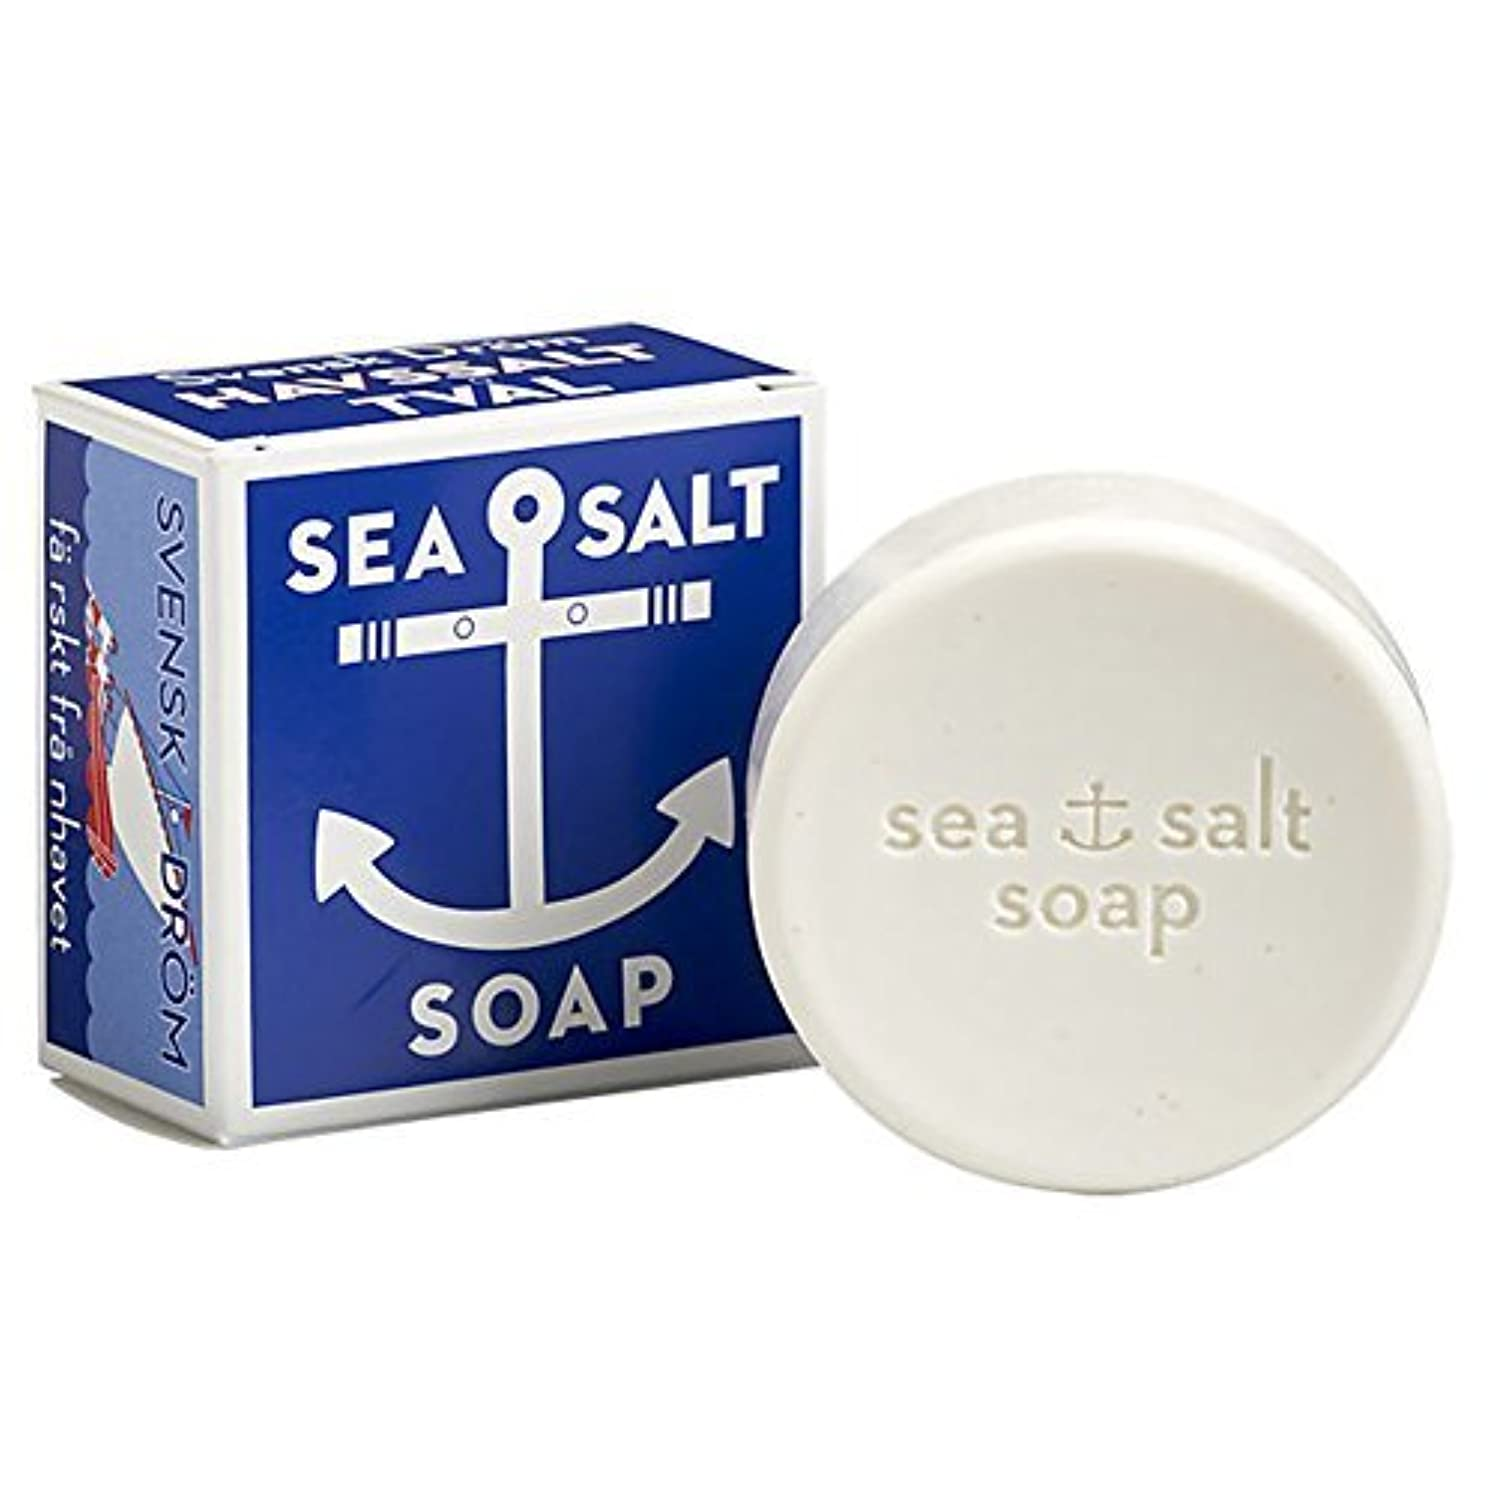 溶岩影のある忘れられないSwedish Dream Sea Salt Invigorating Bath Soap - One 4.3 oz Bar by Swedish Dream [並行輸入品]